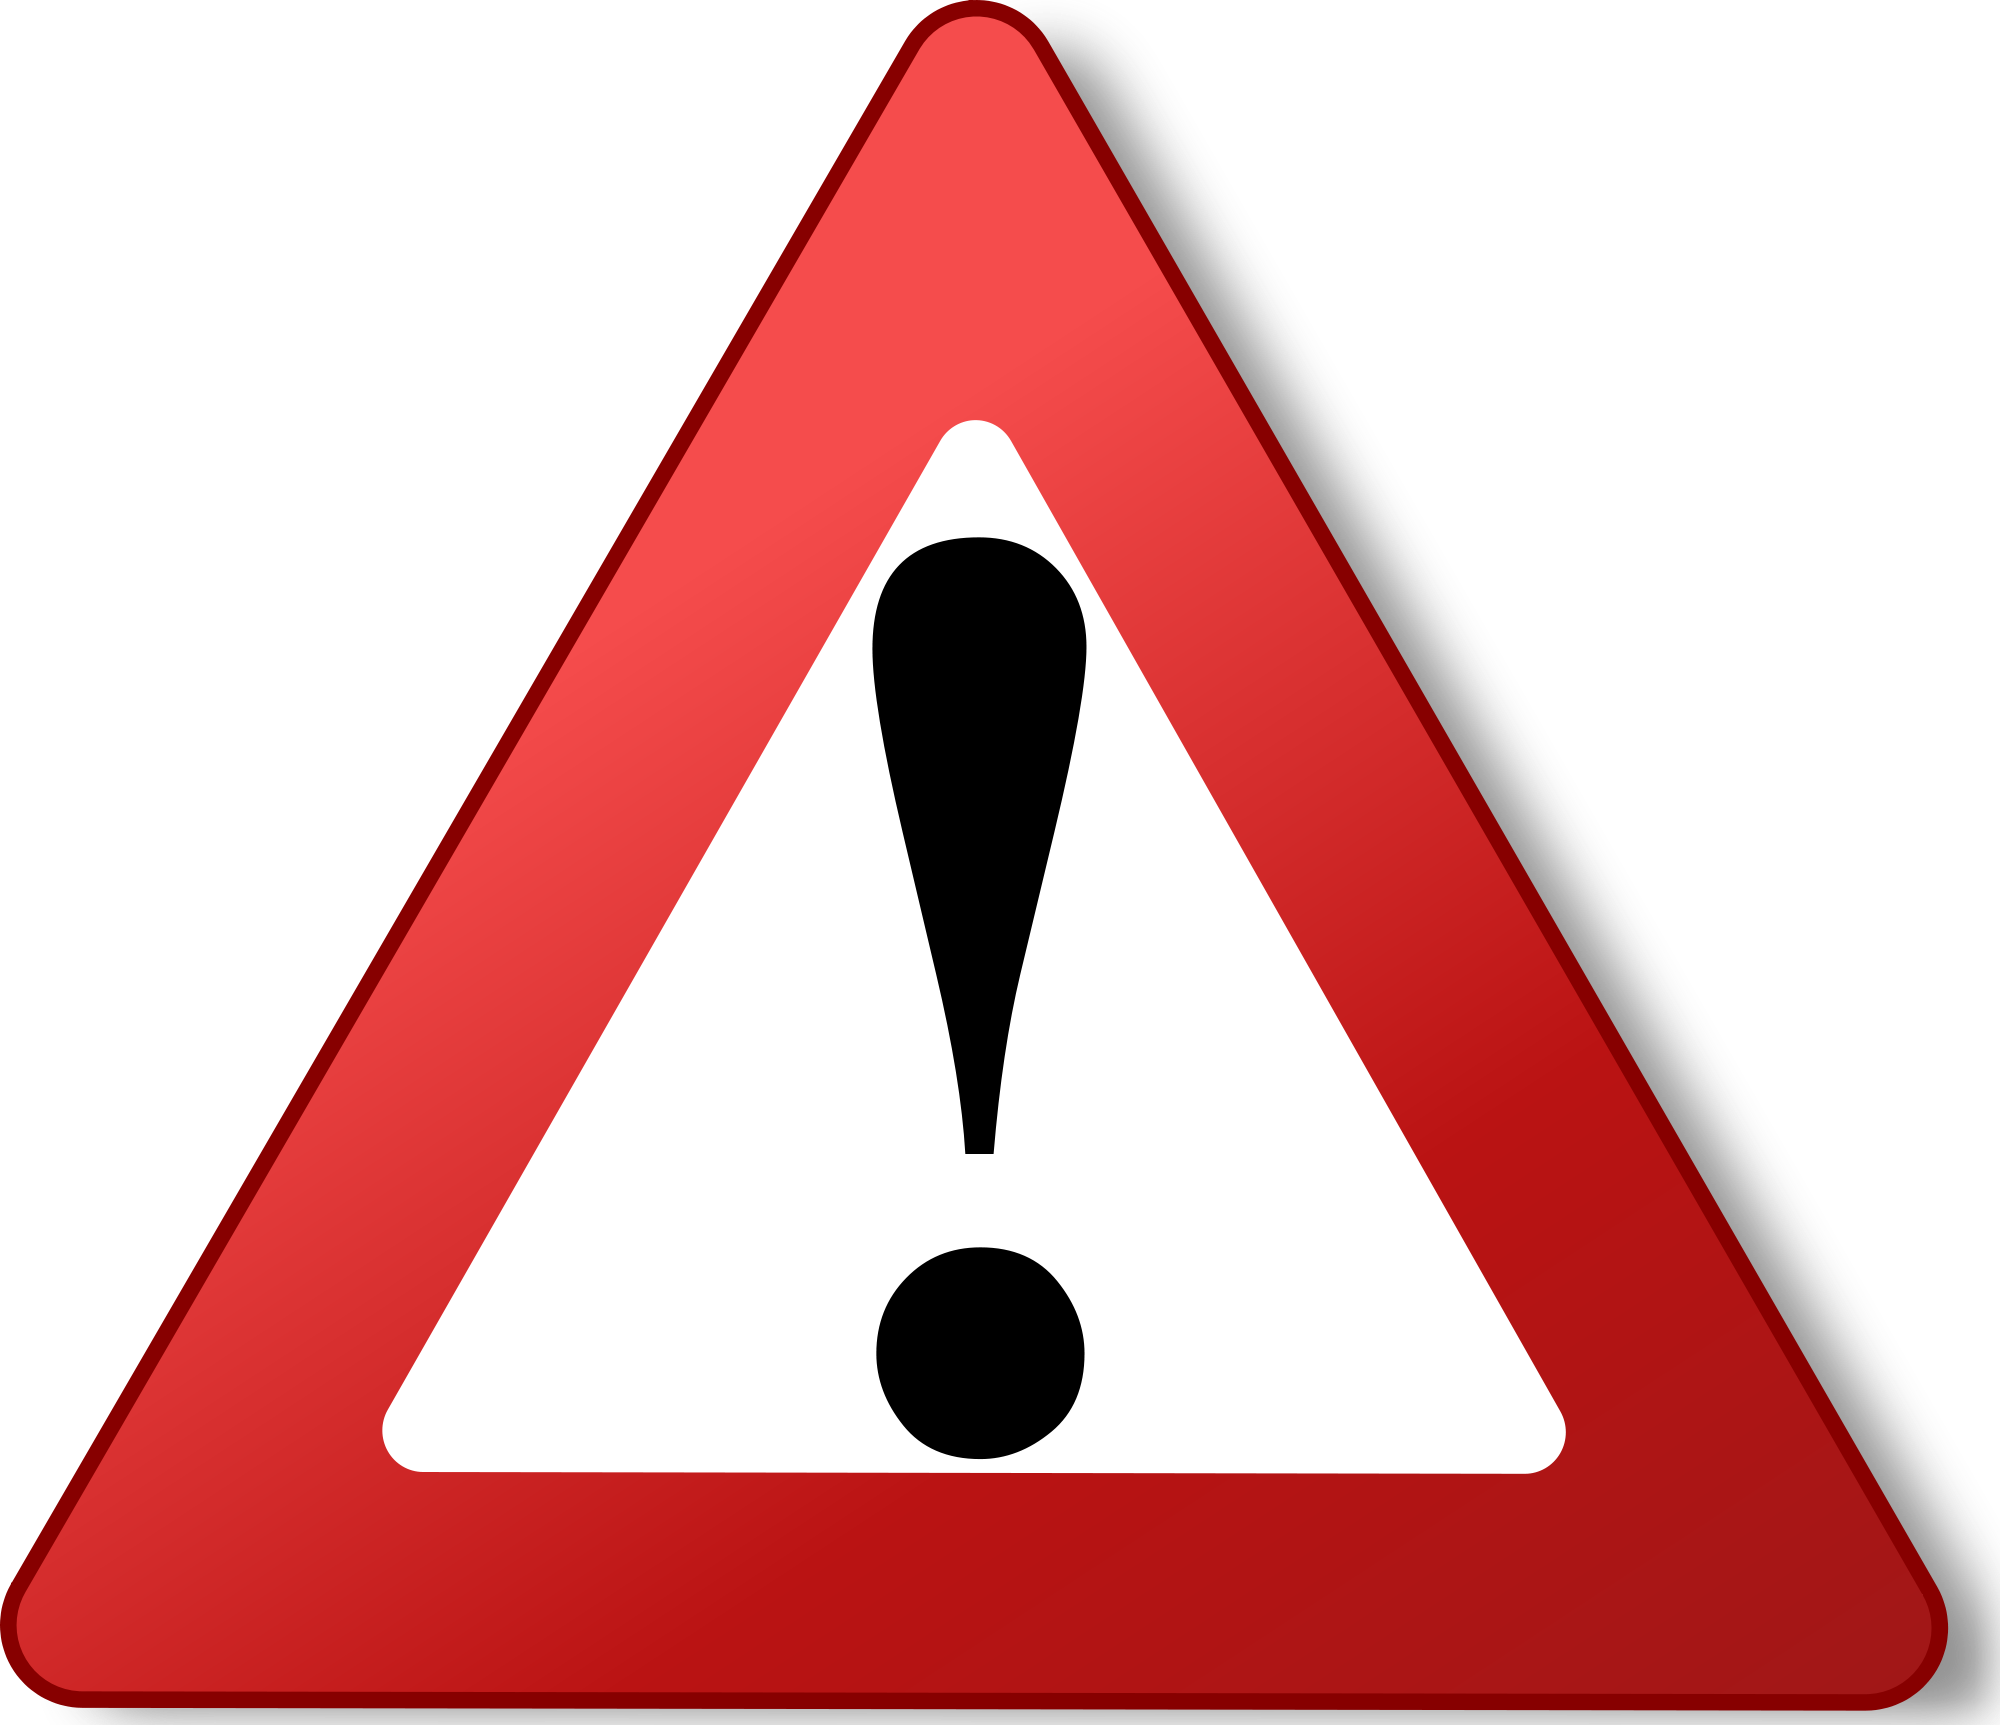 Triangular clipart warning. File triangle red png